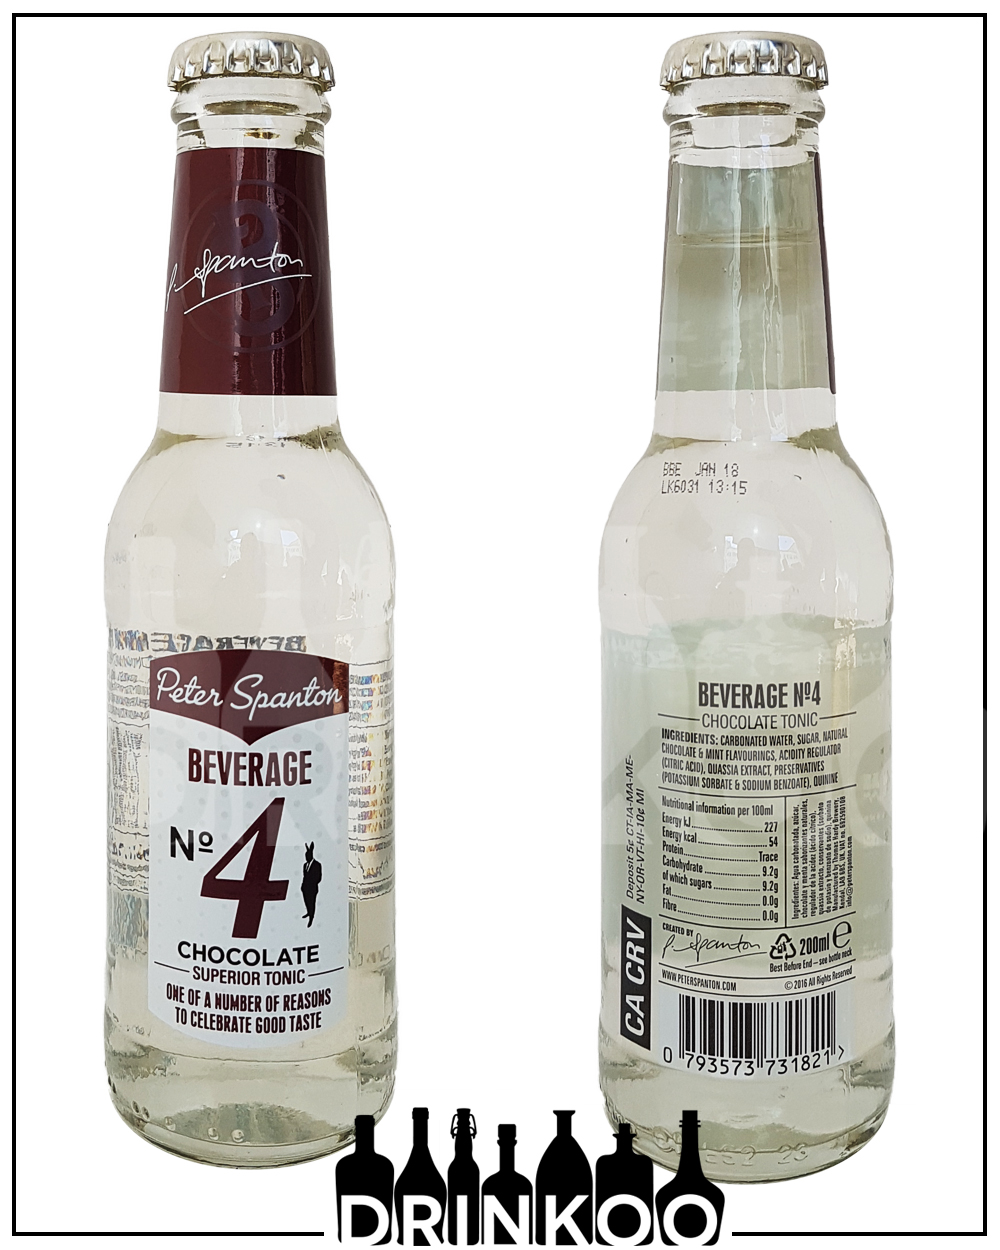 Peter Spanton Beverage No 4 Chocolate Tonic Water